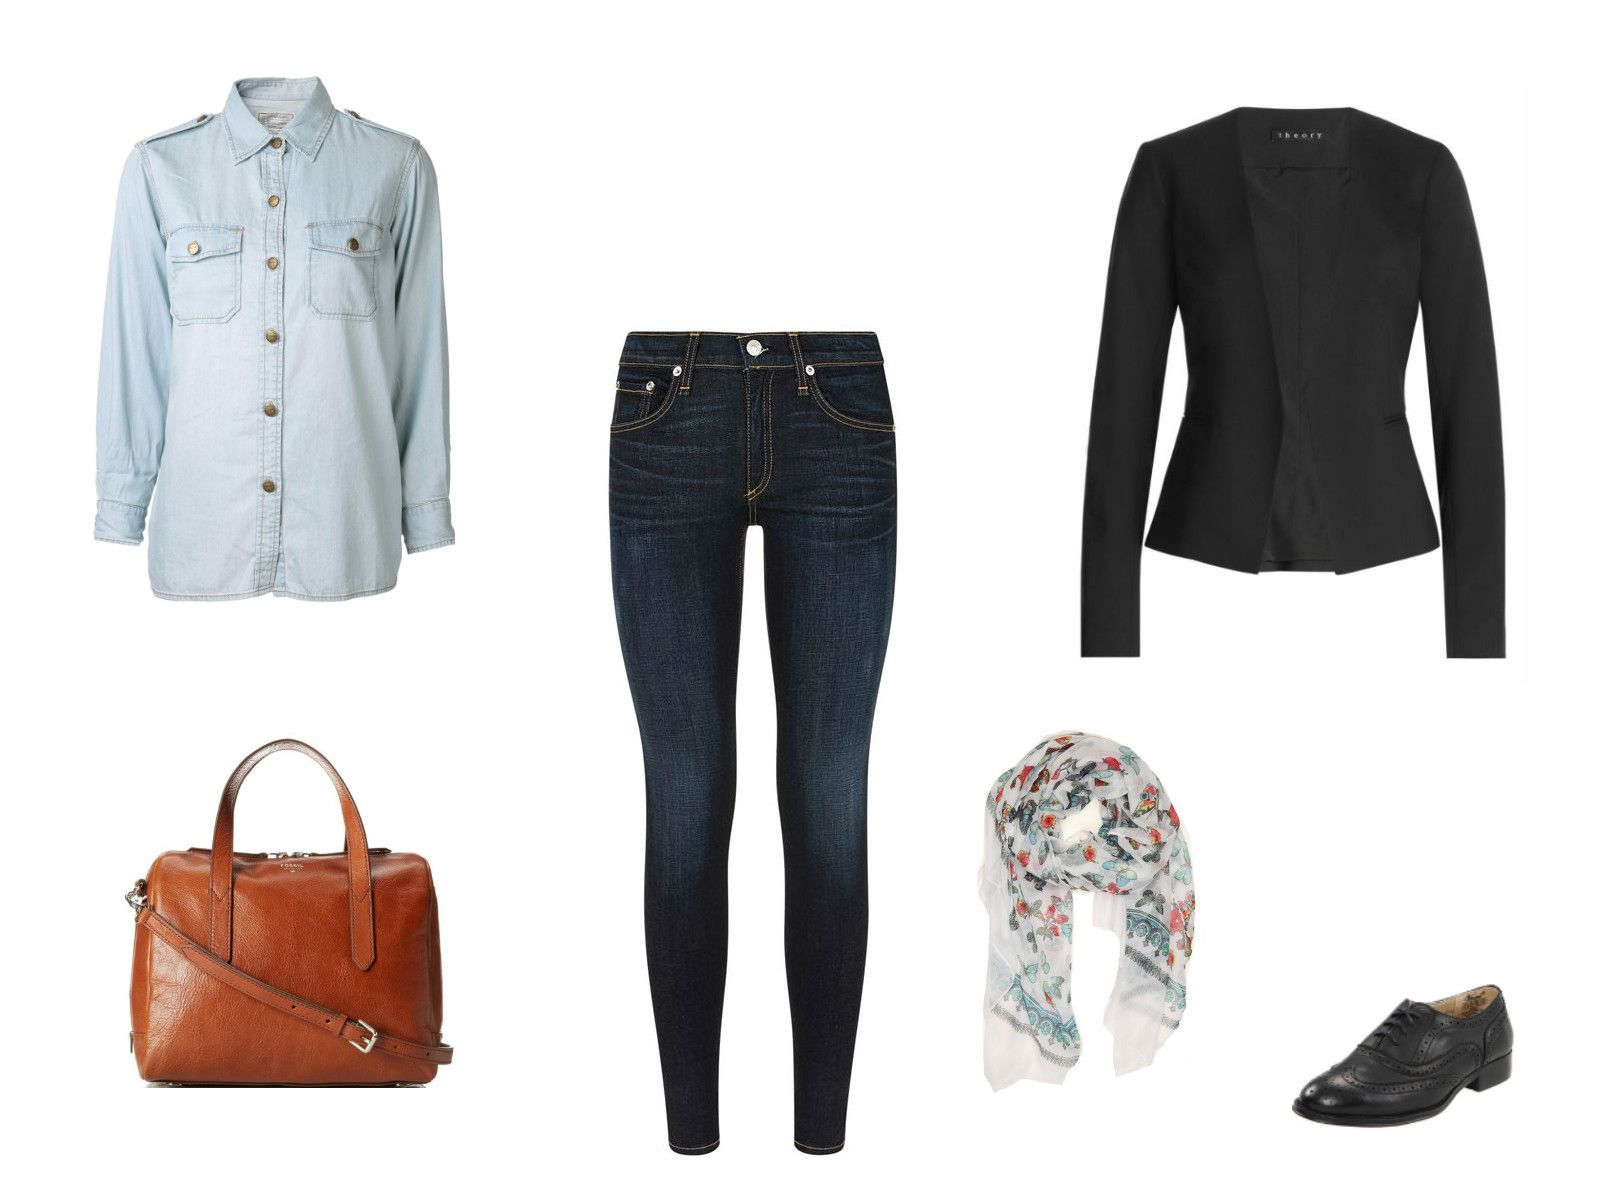 The Denim Shirt How To Wear It 12 Different Ways